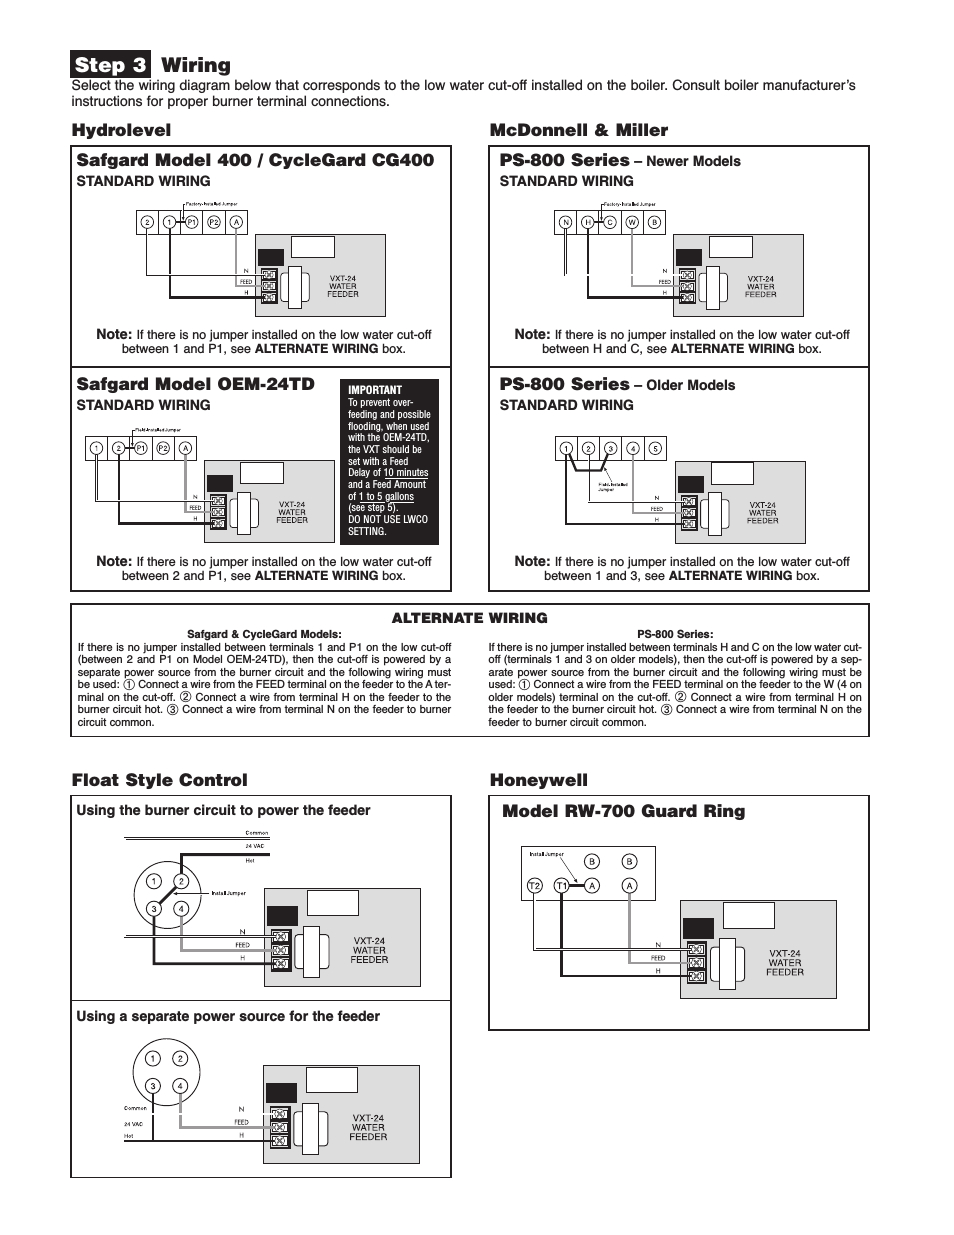 Low Water Cut Off Wiring Diagram | Wiring Diagram - Mcdonnell Miller Low Water Cutoff Wiring Diagram